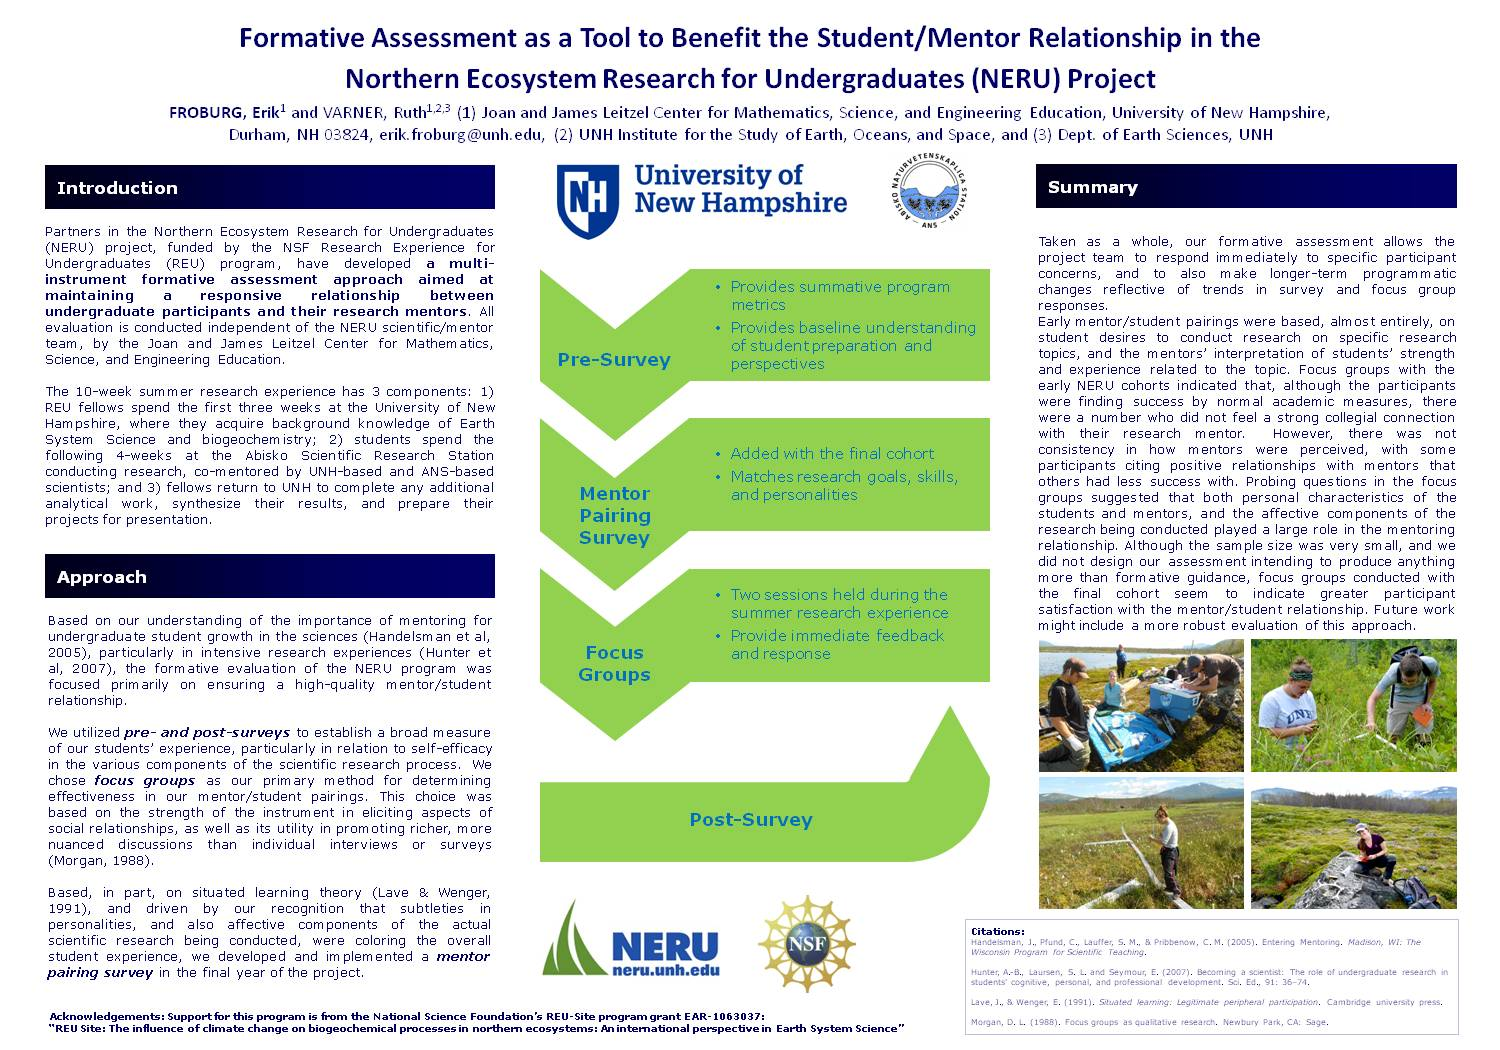 Formative Assessment As A Tool To Benefit The Student/Mentor Relationship In The  Northern Ecosystem Research For Undergraduates (Neru) Project by efroburg